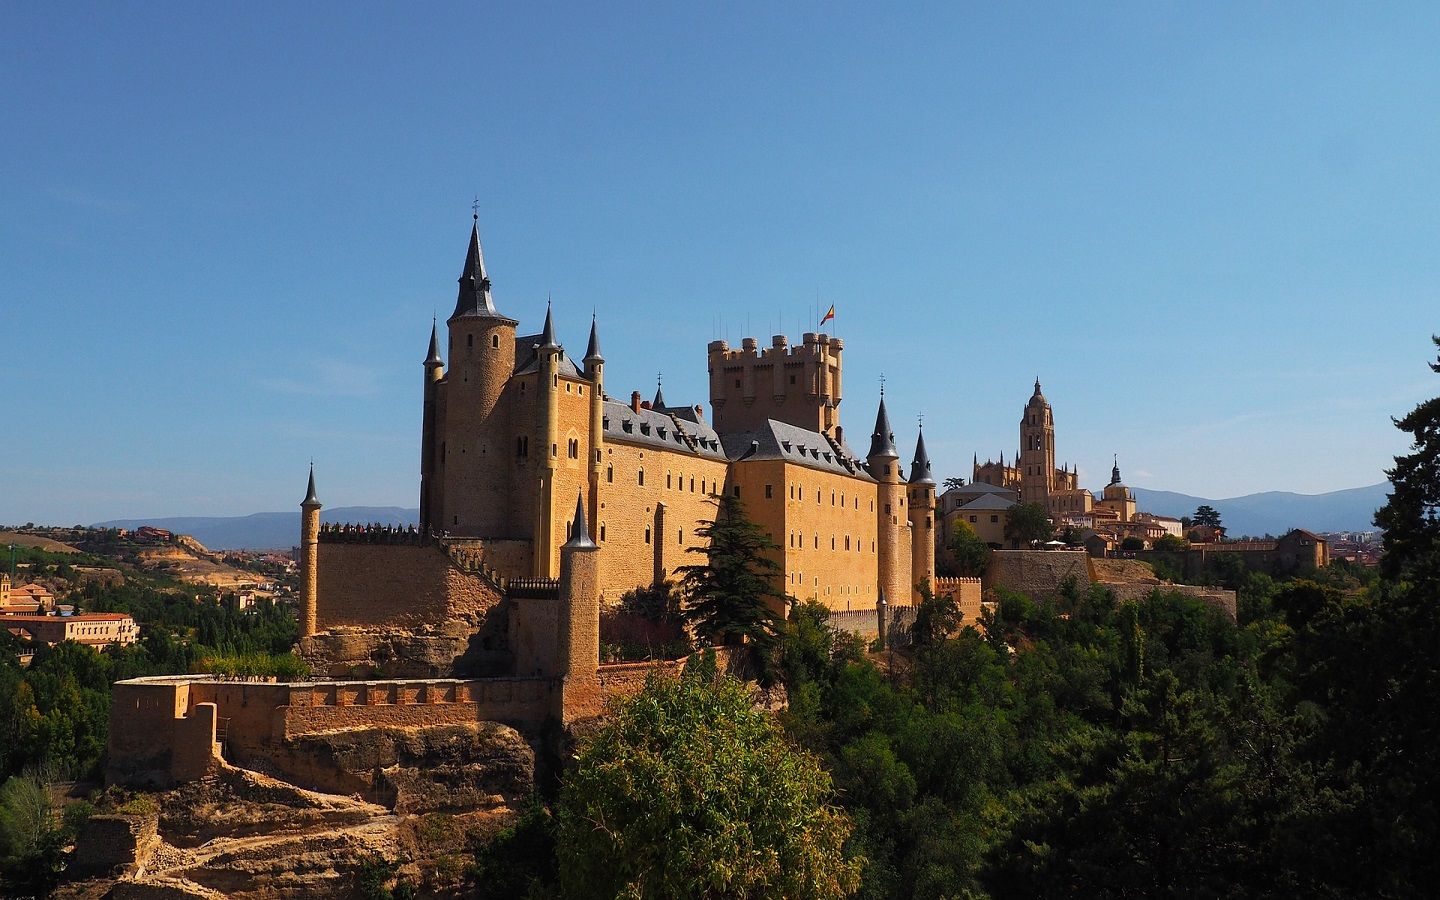 Alcazar of Segovia is one of the spots that inspired Disney movies